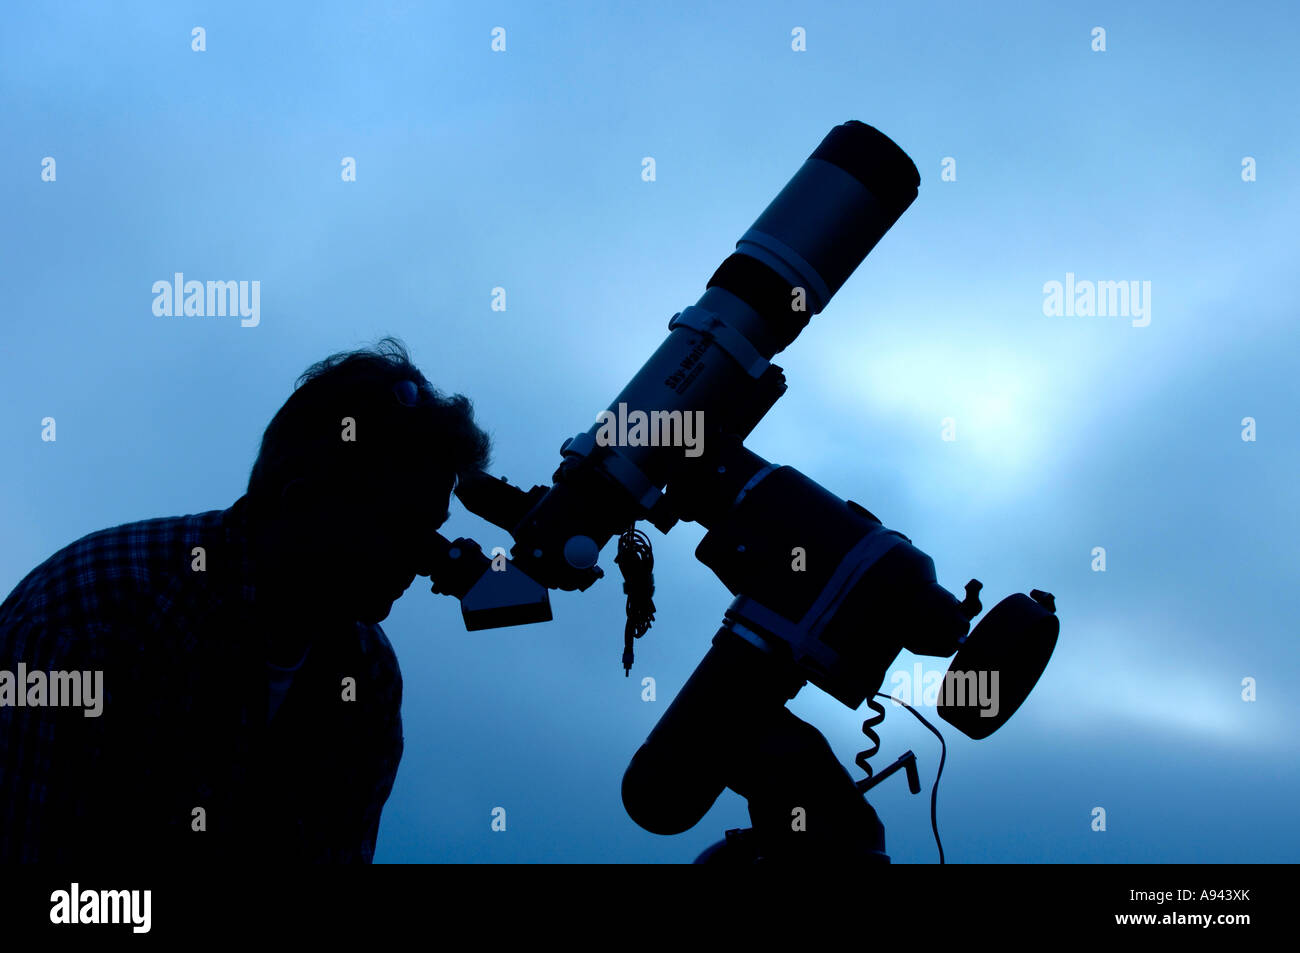 Astronomer - Stock Image